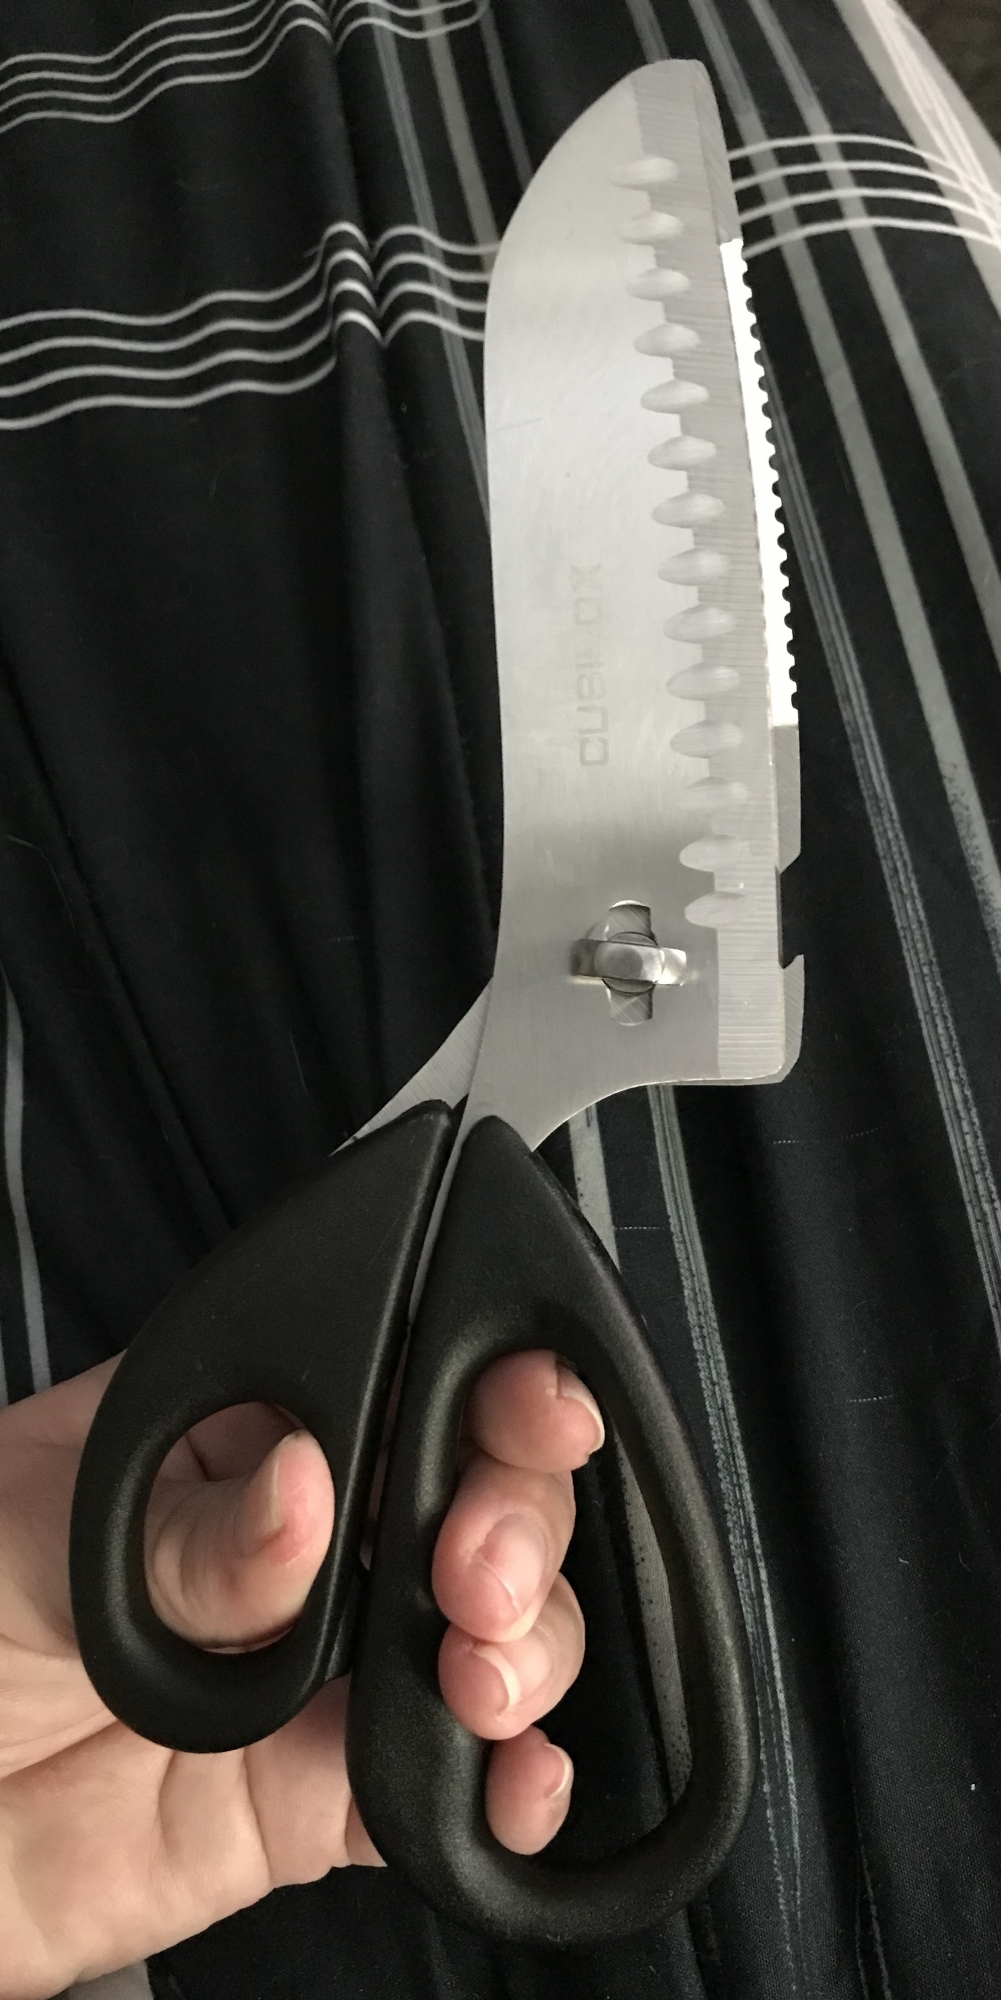 Amazing heavy duty kitchen shears!